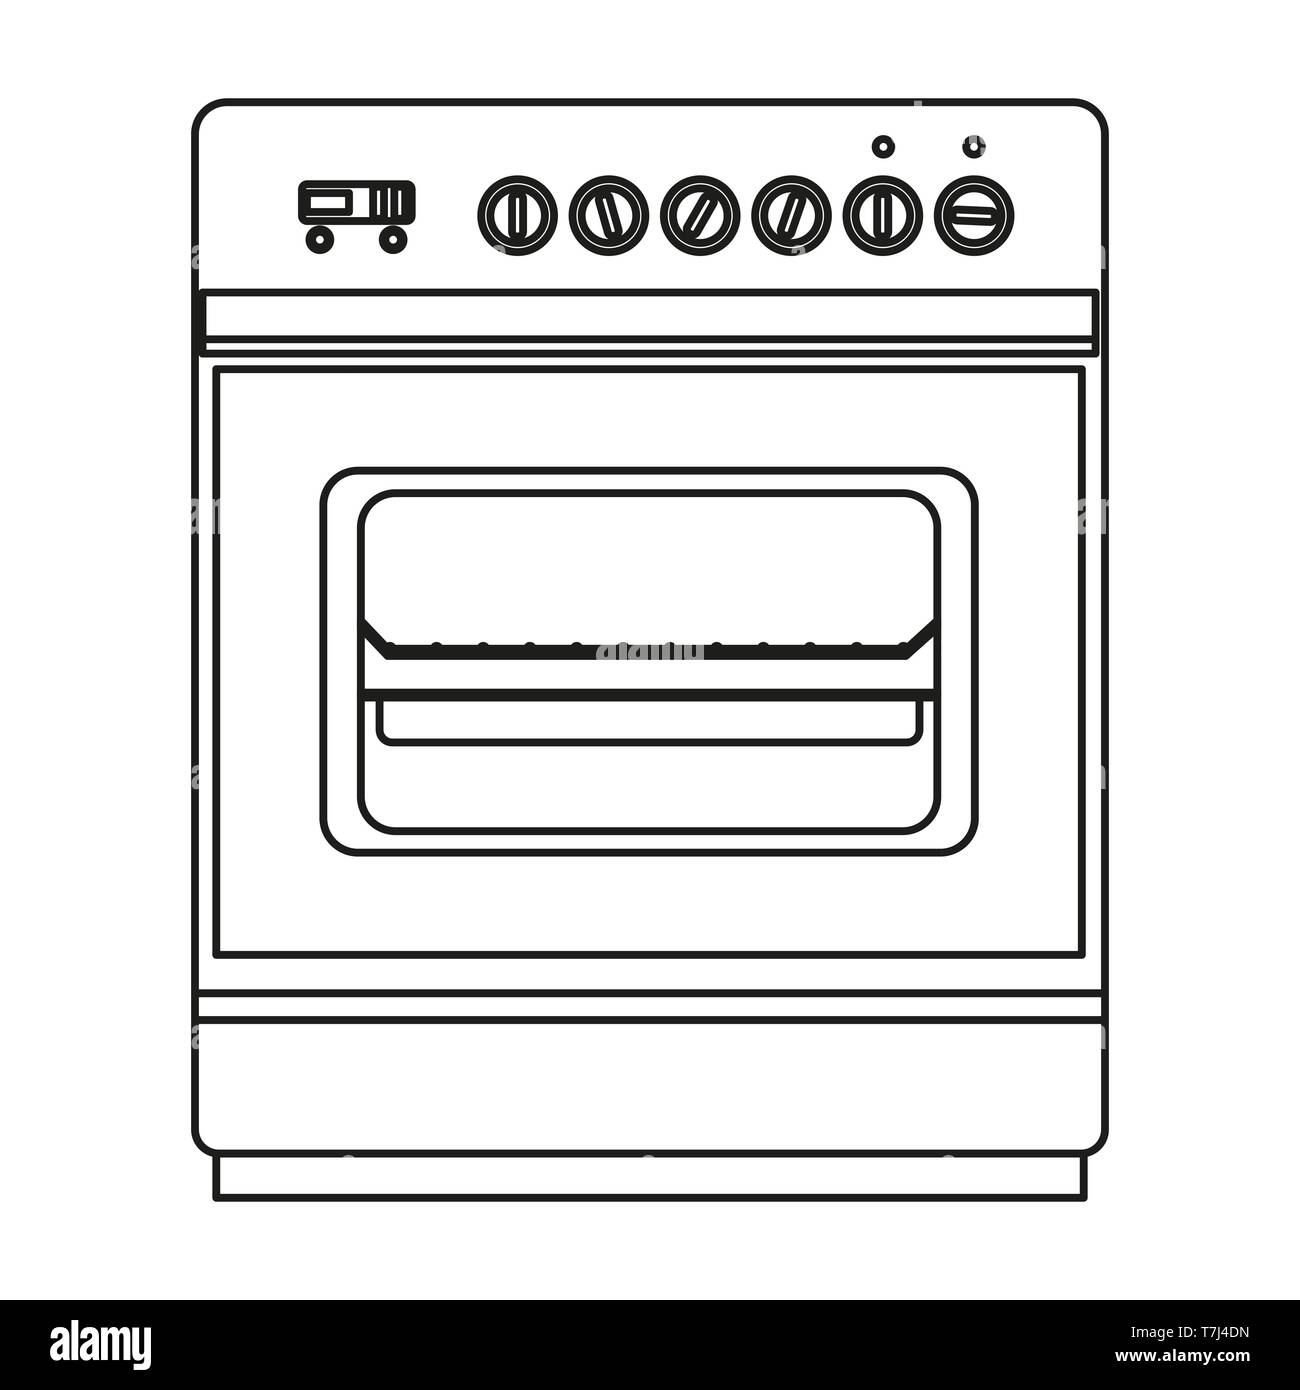 Stove line icon isolated on white background. Outline thin equipment pictogram vector. - Stock Vector